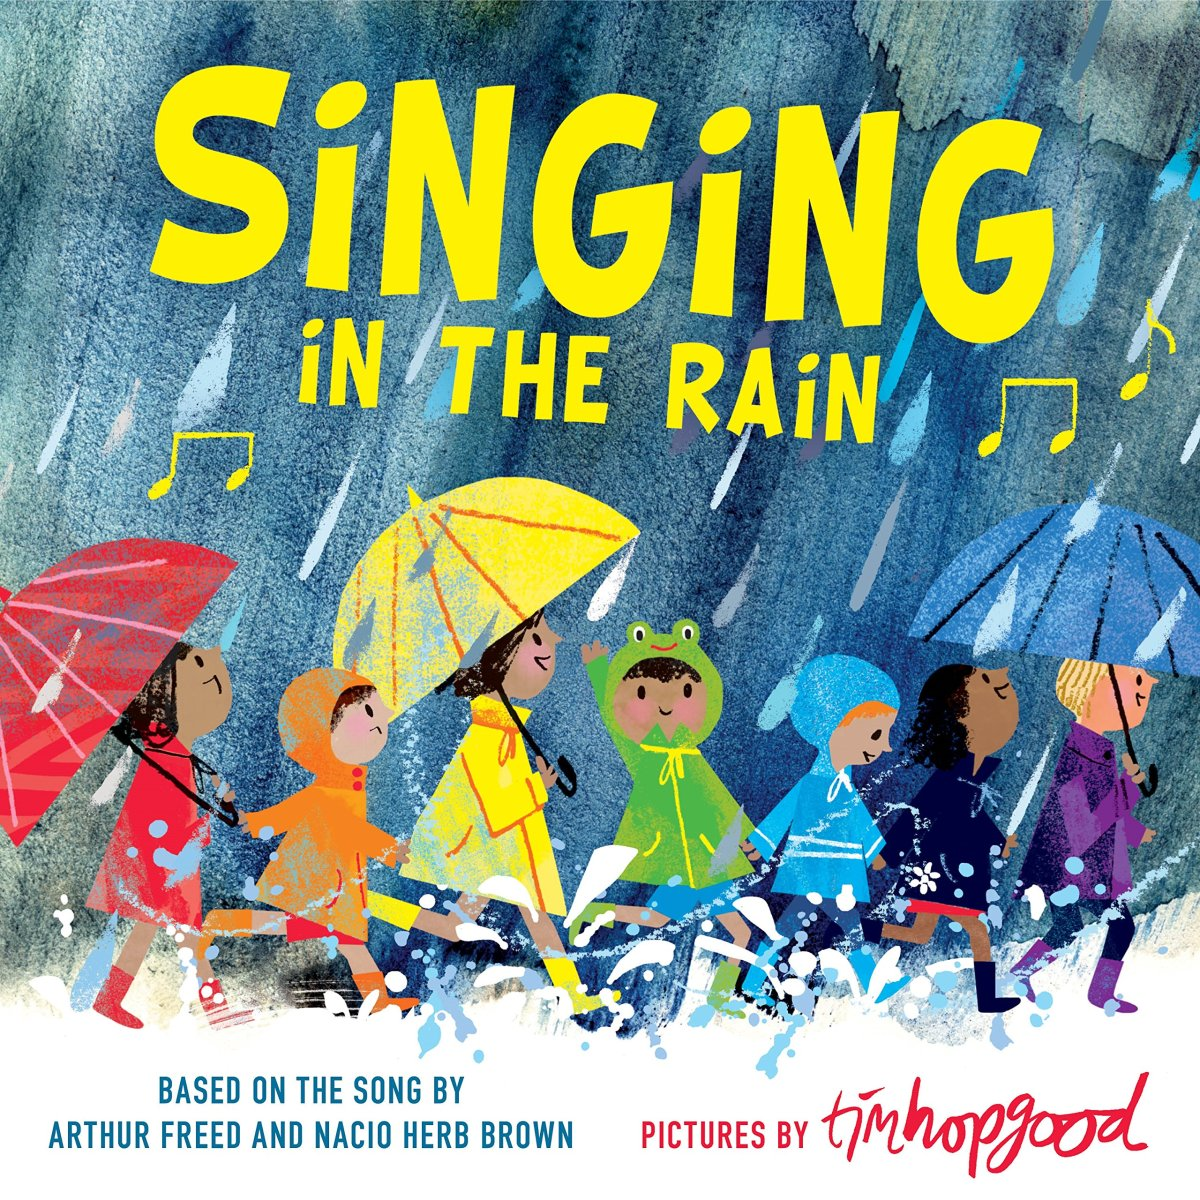 singing in the rain cover image